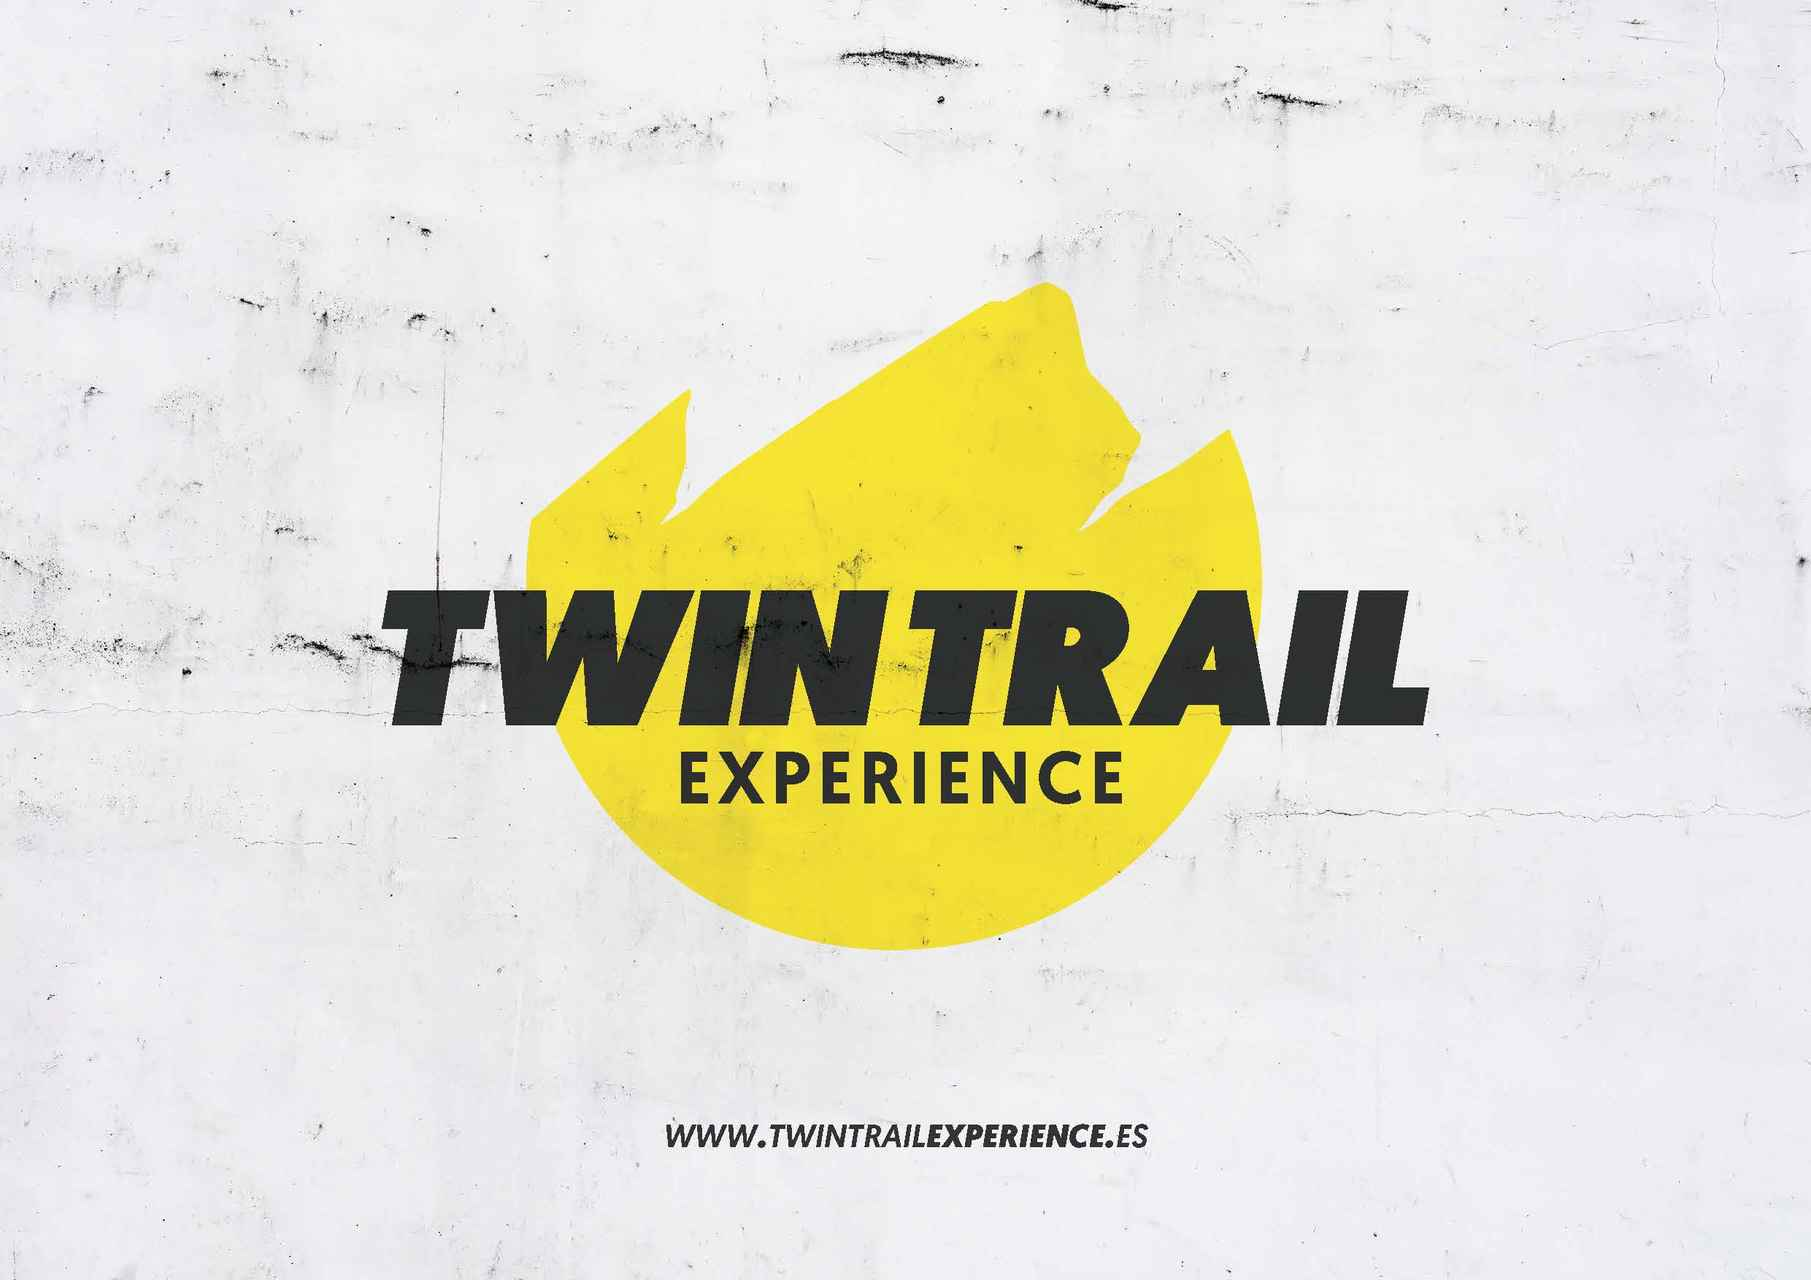 TwinTrail Experience